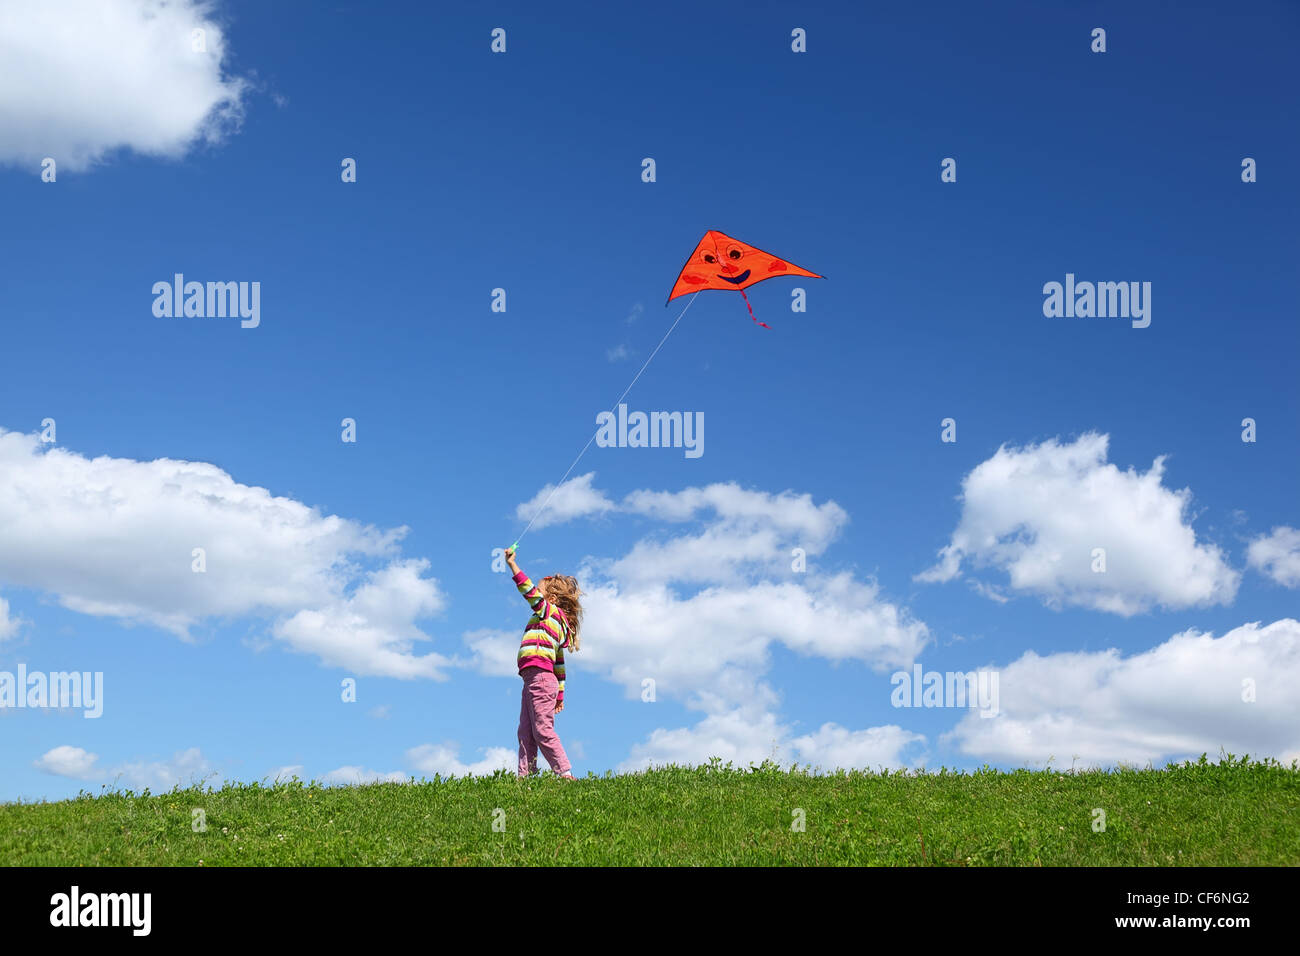 Little girl starts air serpent in sky in summer - Stock Image